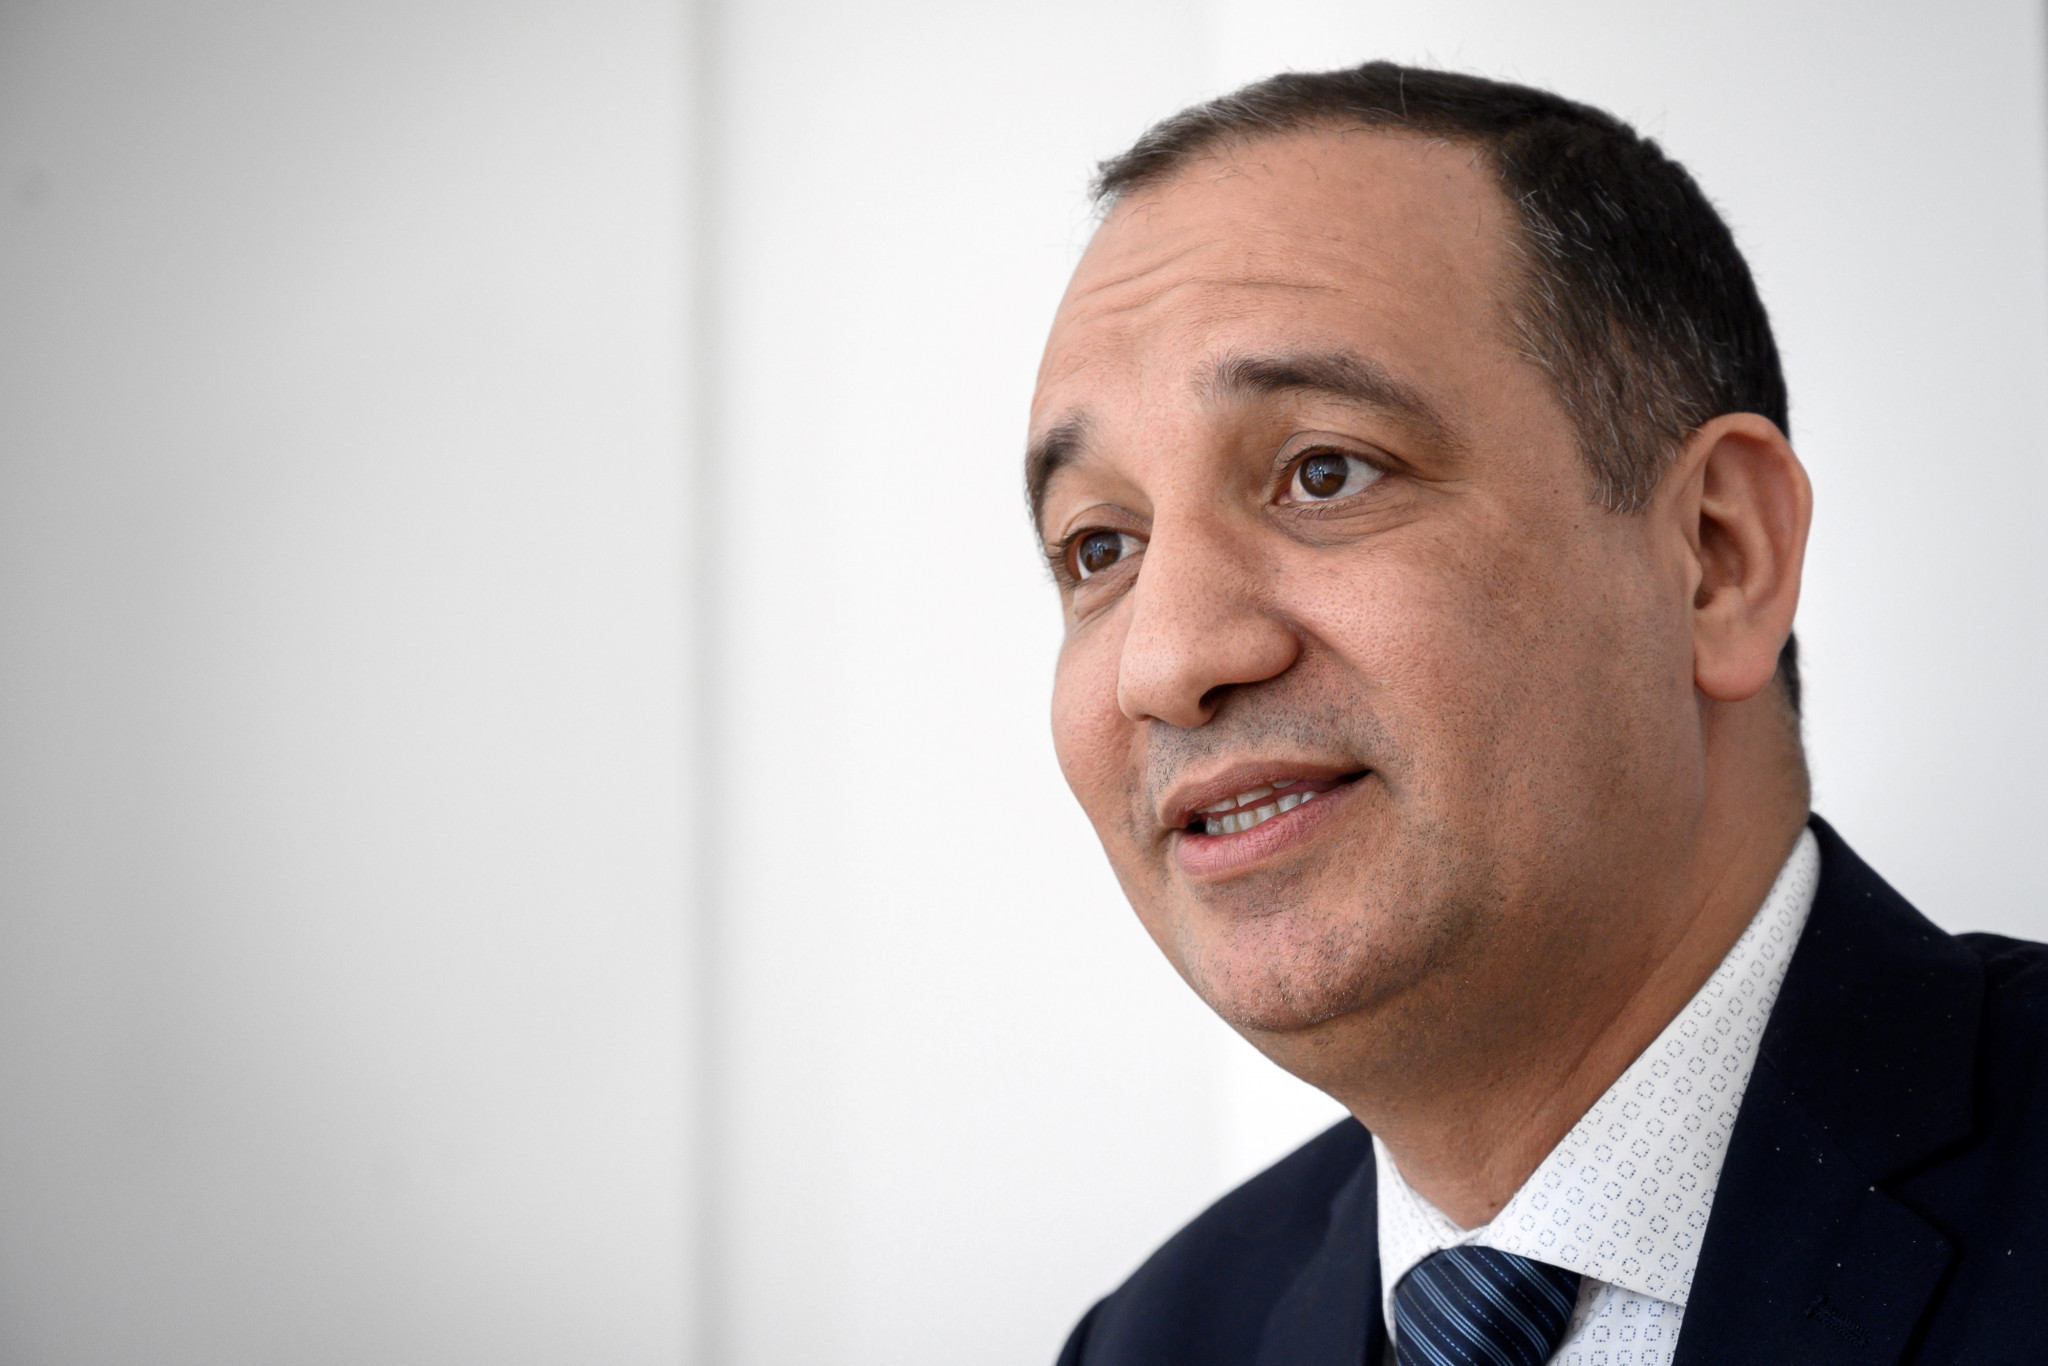 Interim AIBA President Mohamed Moustahsane says the organisation is confident of remaining the Olympic governing body for the sport after leading an eight-person delegation in a meeting with the IOC in Lausanne today ©Getty Images